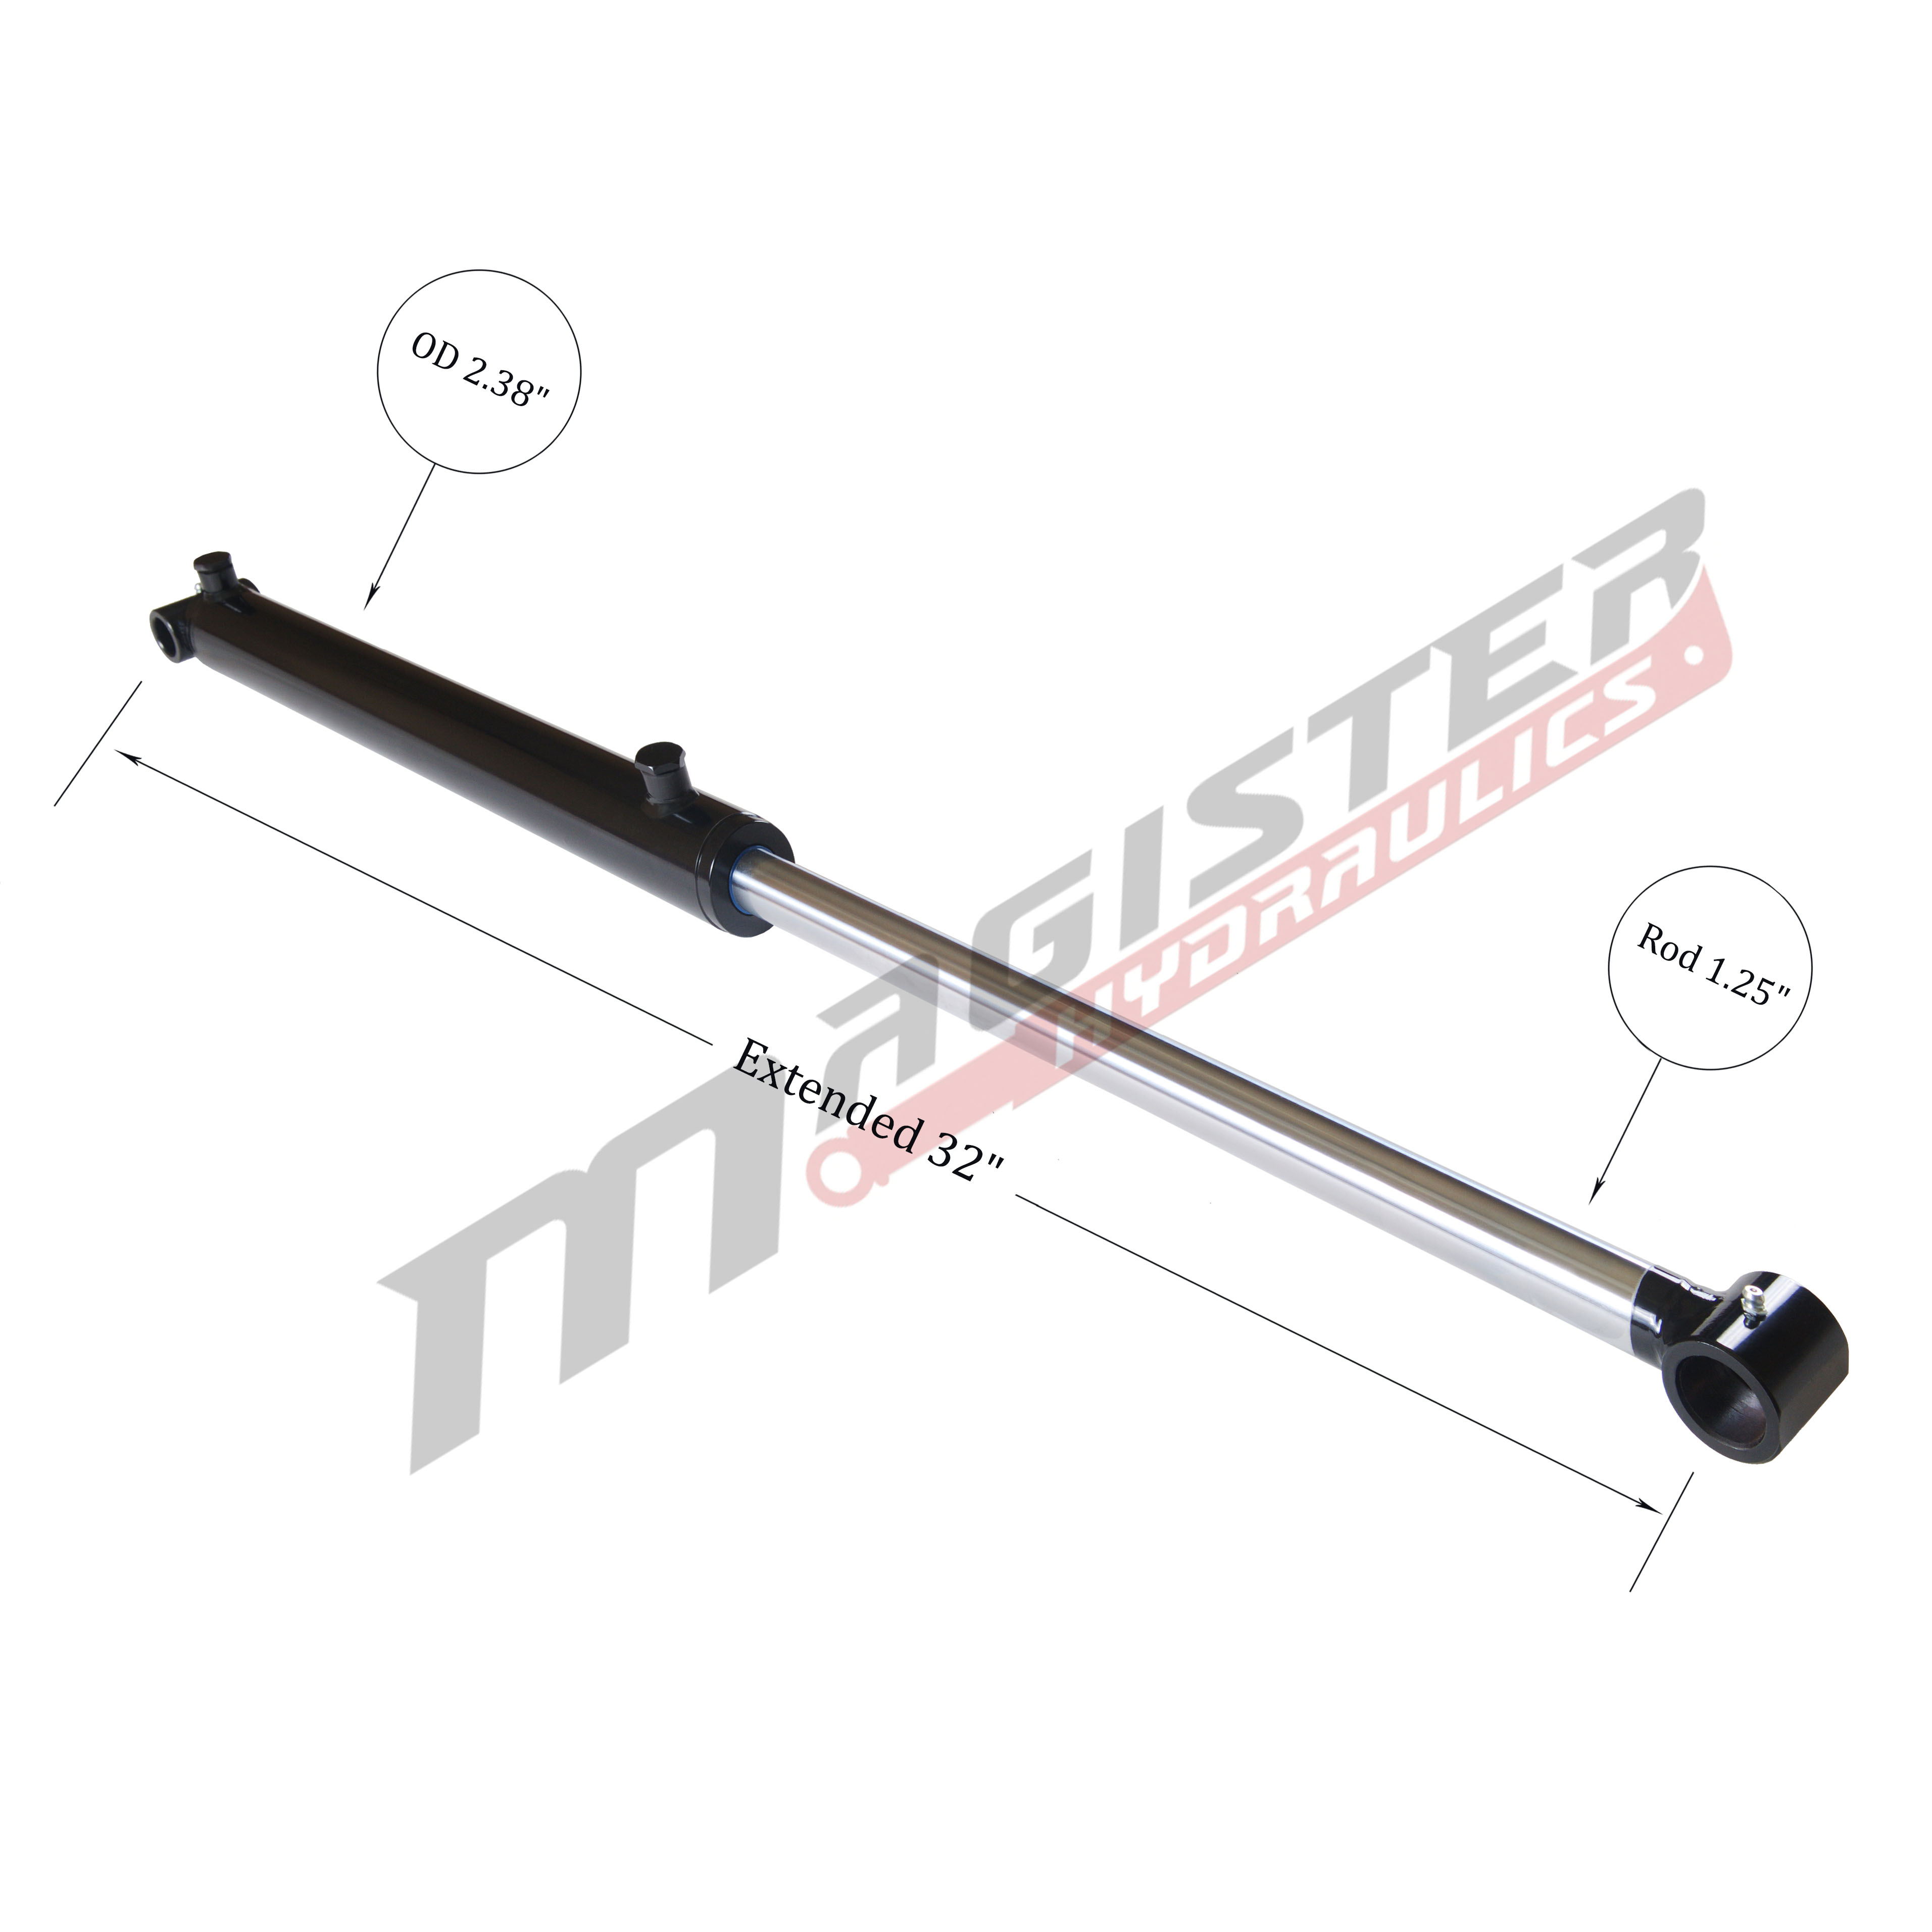 2 bore x 12 stroke hydraulic cylinder, welded cross tube double acting cylinder | Magister Hydraulics